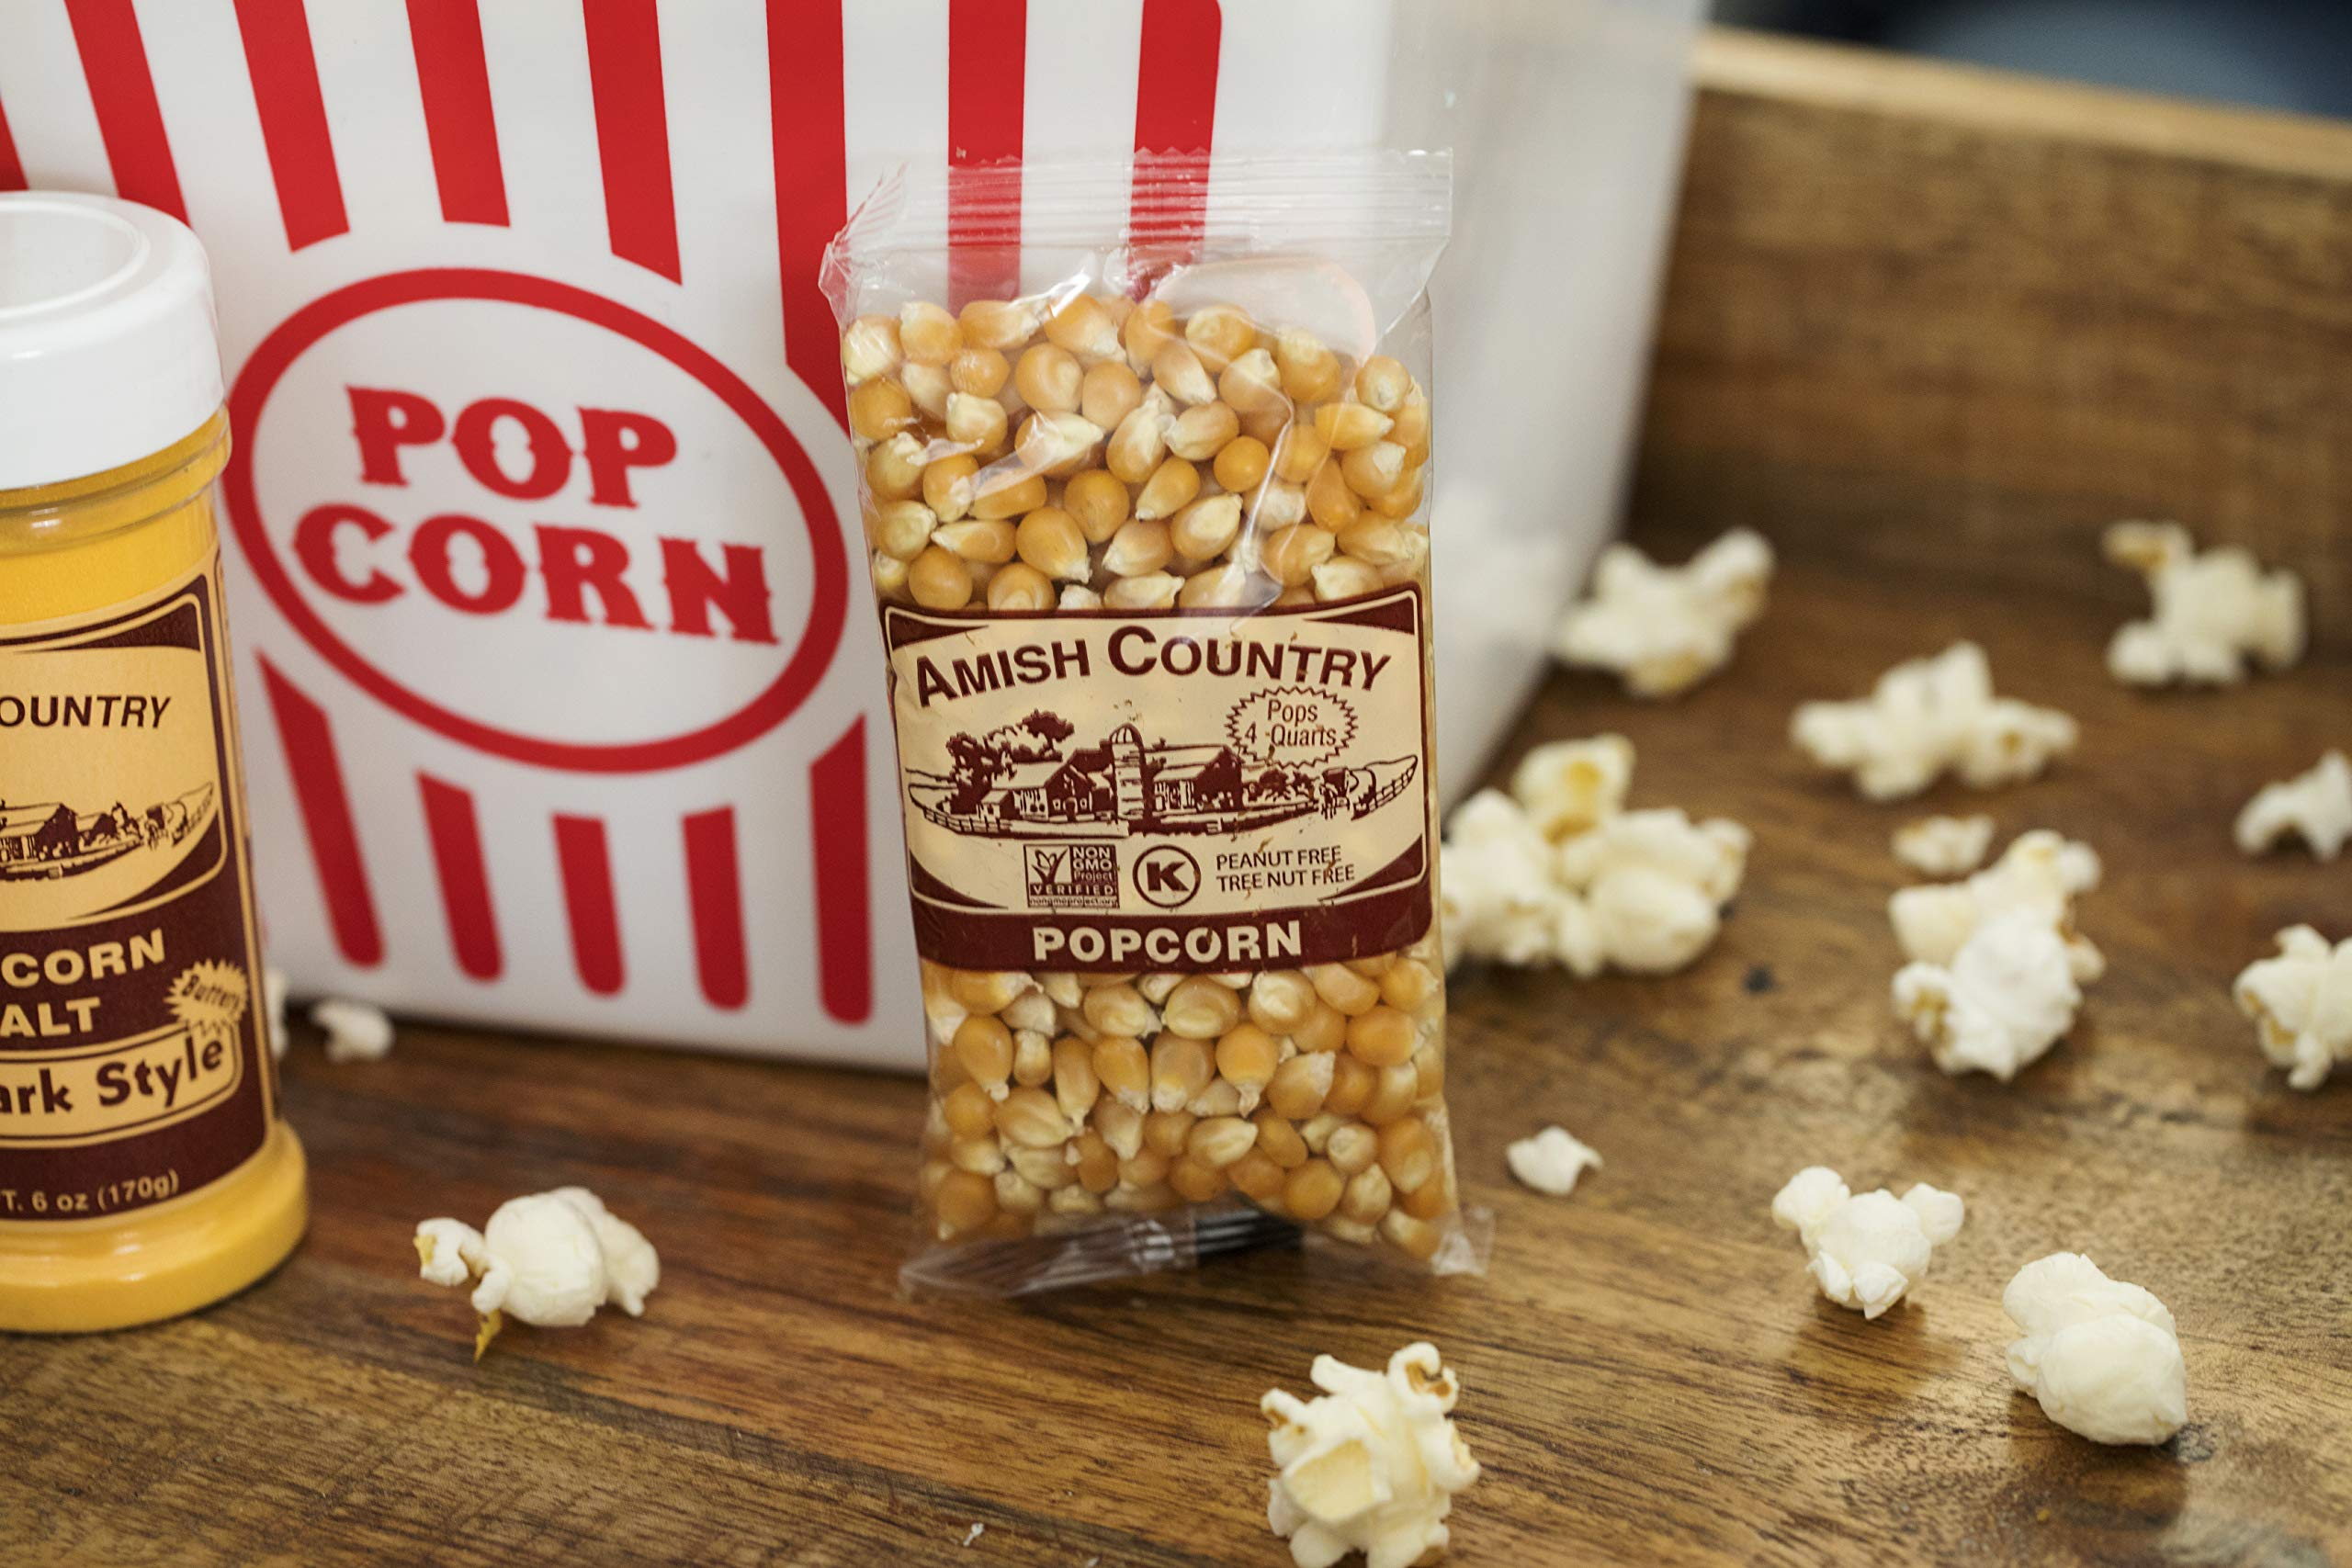 Amish Country Popcorn - Mushroom Popcorn (4 Ounce - 24 Pack) Bags - Old Fashioned, Non GMO, and Gluten Free - with Recipe Guide by Amish Country Popcorn (Image #4)